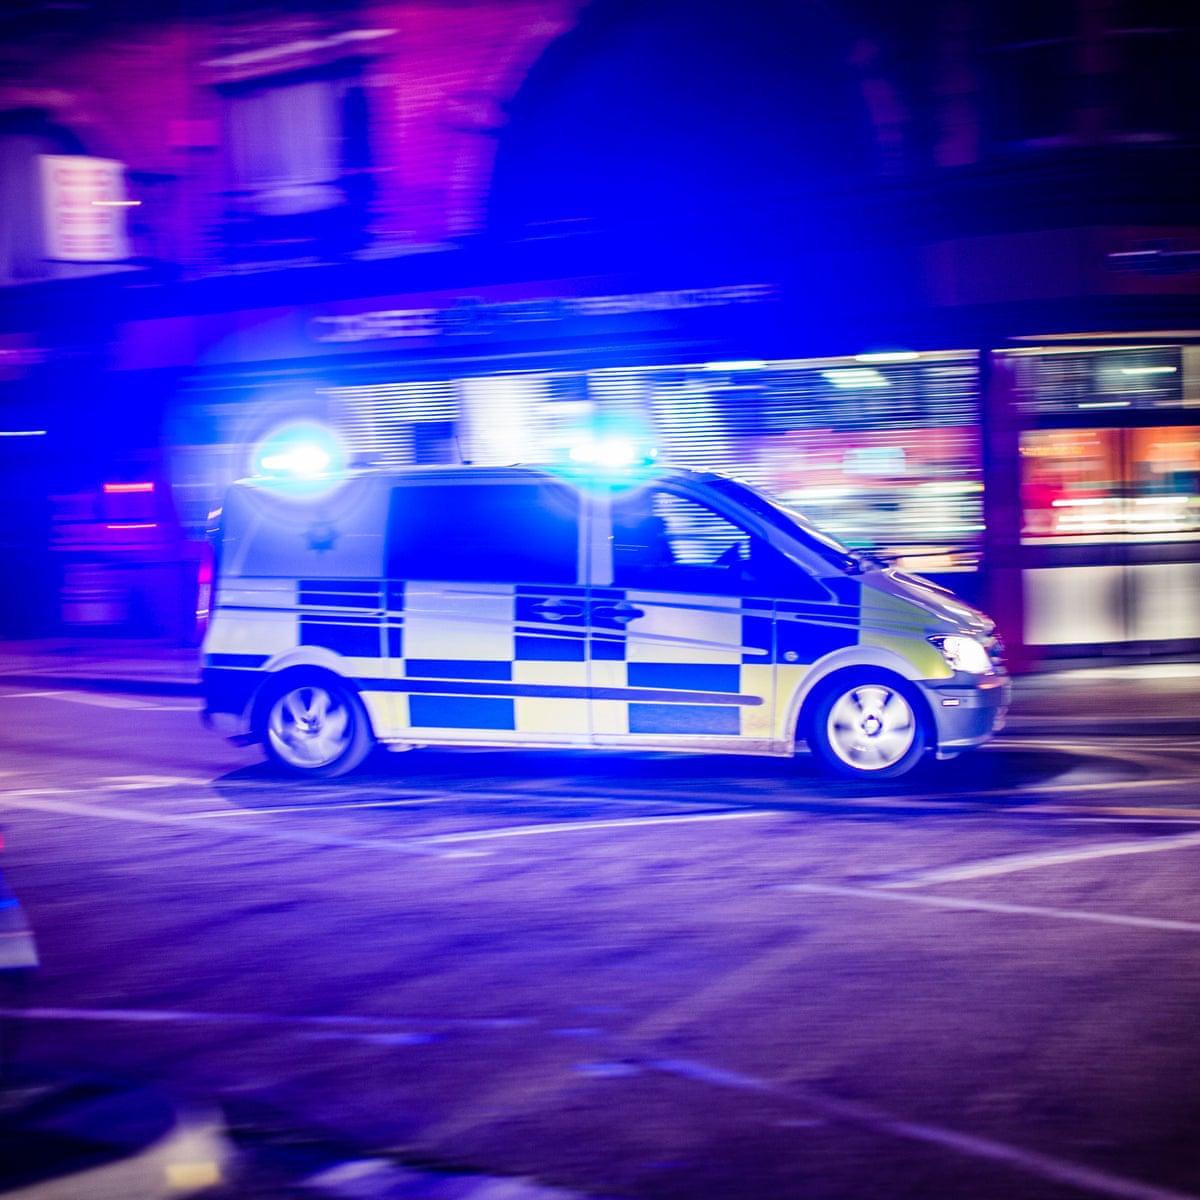 Take It From A Paramedic The Ambulance Service Can T Keep Up With Demand Jake Jones Opinion The Guardian Before they appeared on tiktok, call an ambulance, but not for me memes were popular on reddit starting in 2018. the ambulance service